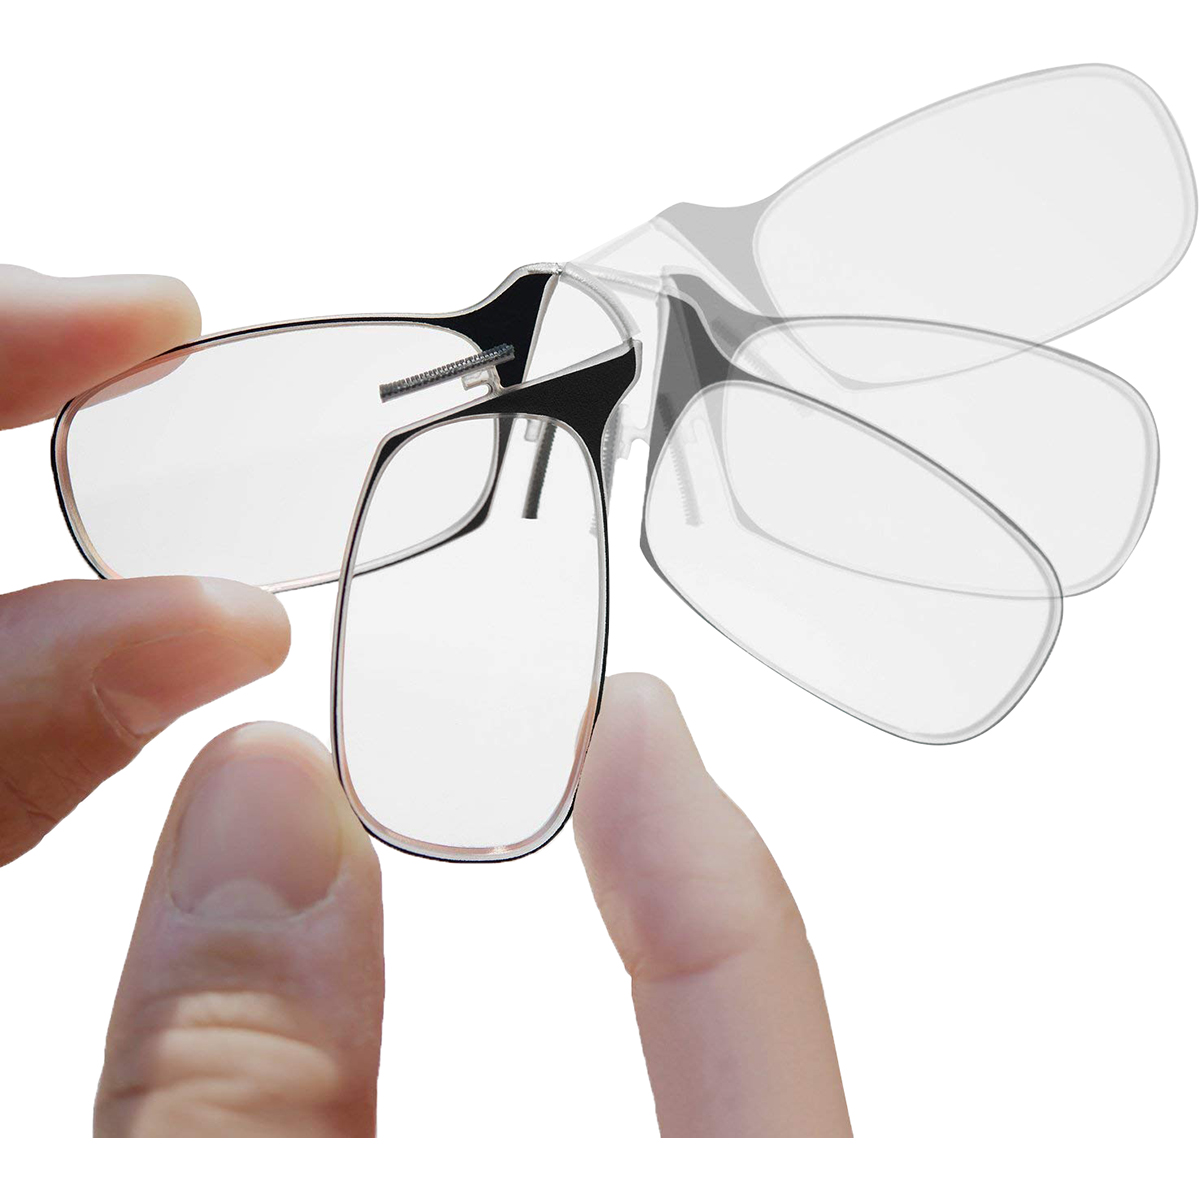 ThinOptics-Secure-Fit-Armless-Ultralight-Reading-Glasses-with-Universal-Pod-Case thumbnail 9